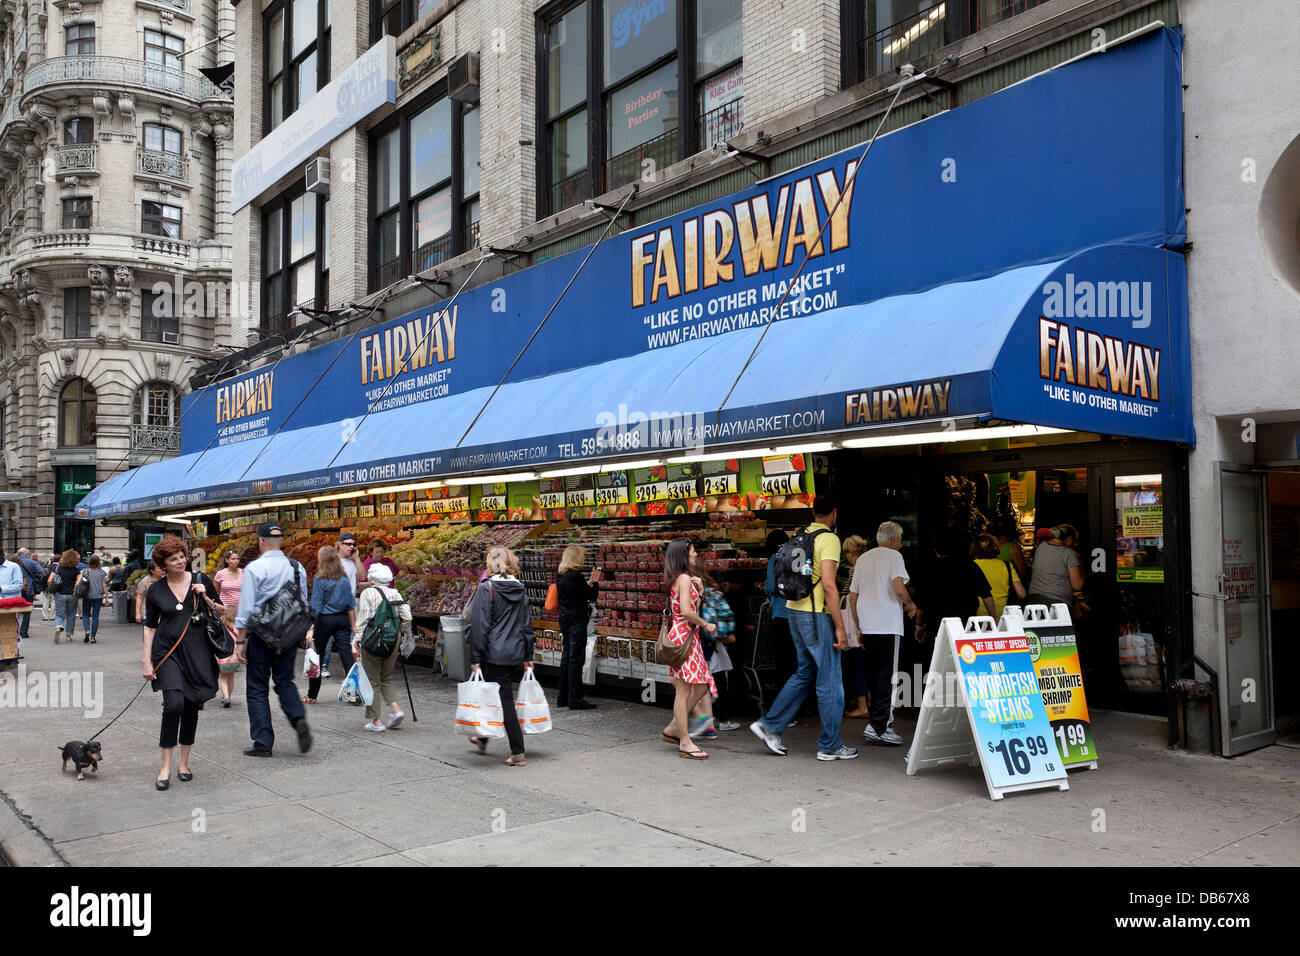 Fairway supermarket on Broadway, New York City - Stock Image